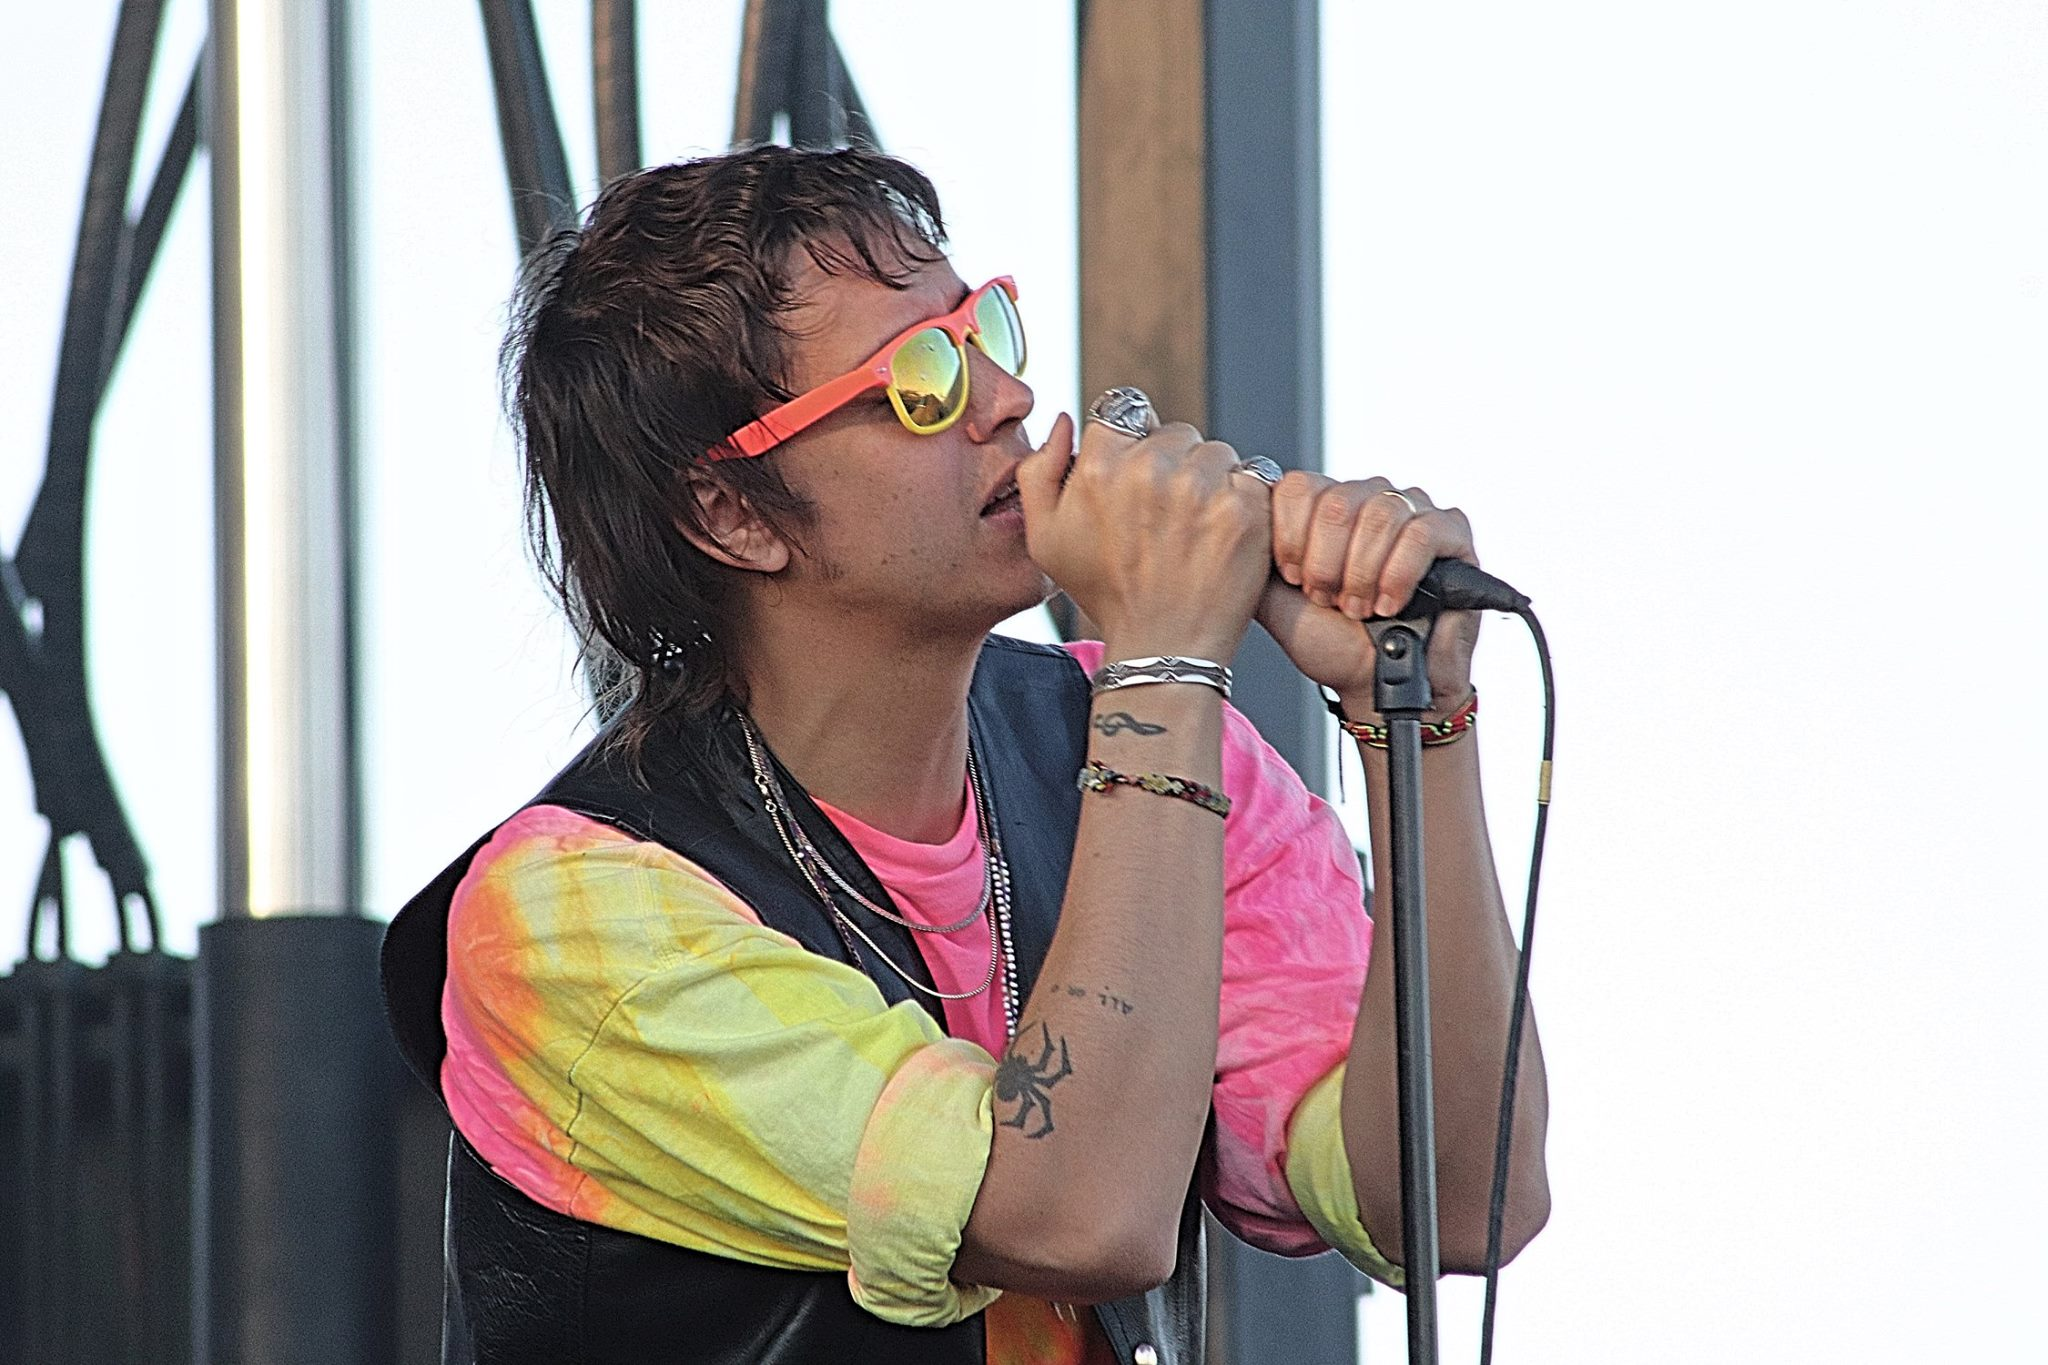 new song by The Voidz